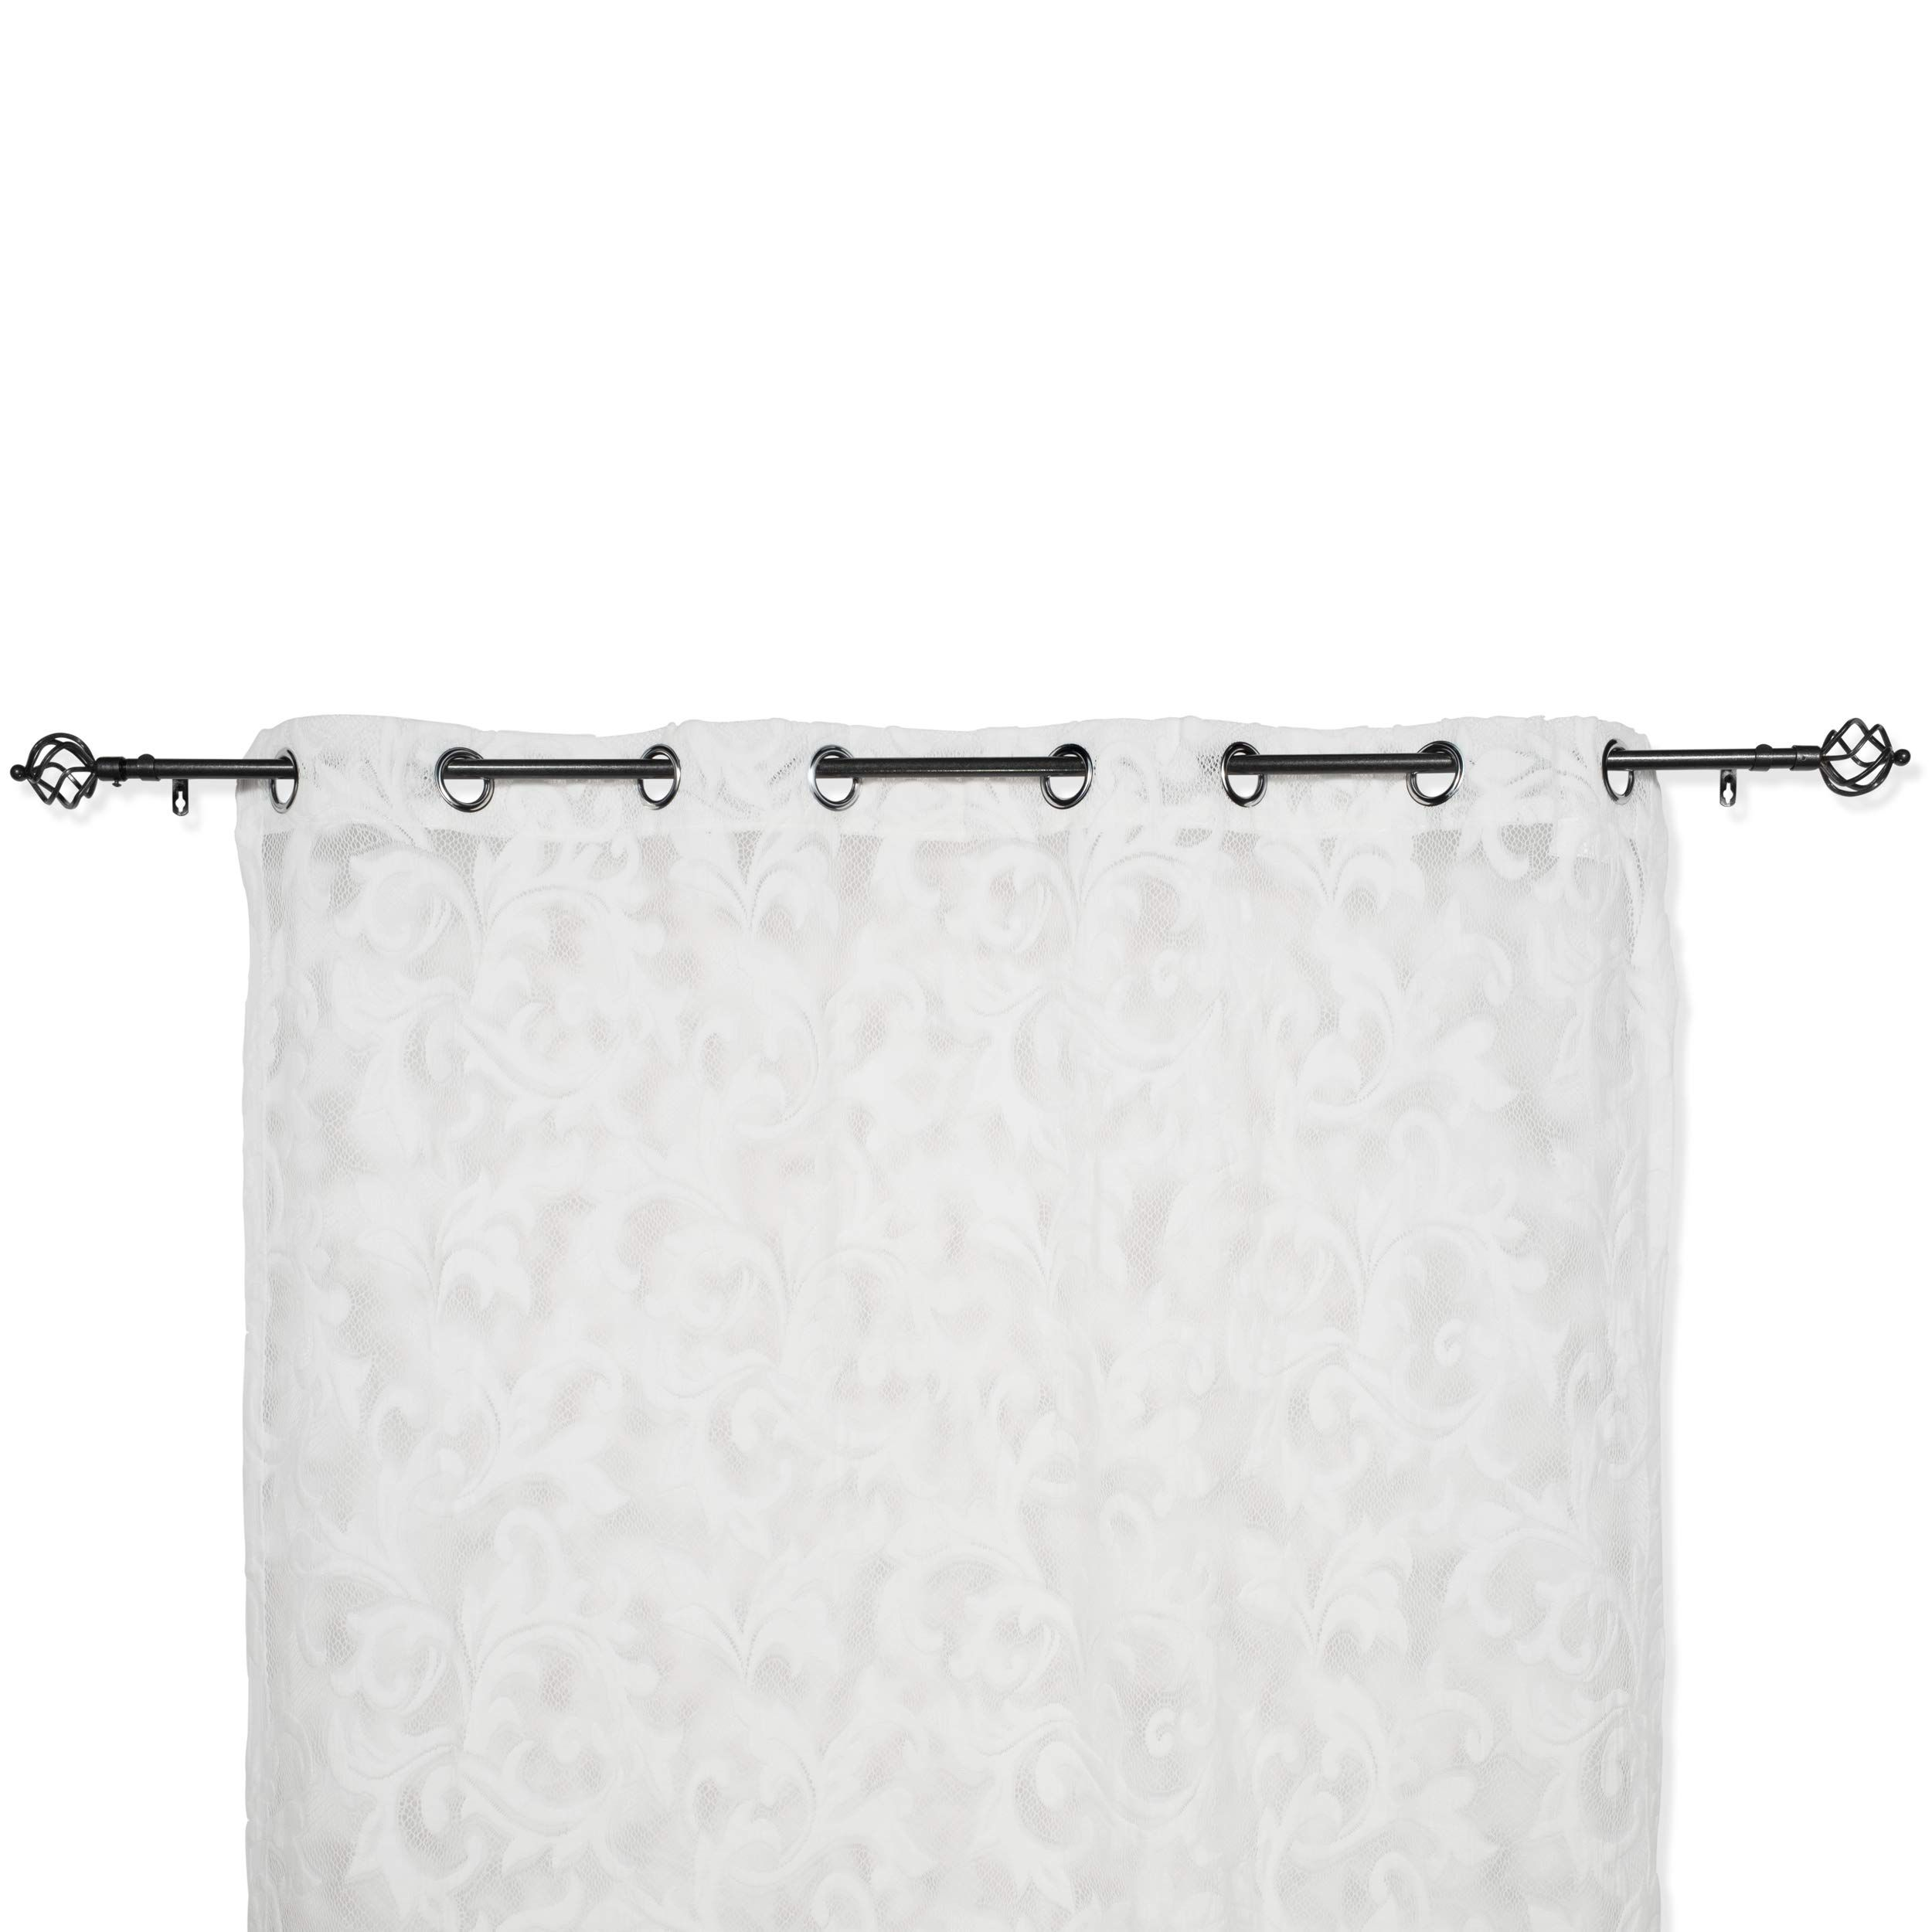 Brightmaison White Lace Curtain Panel 57 X 98 Inches Beautifully